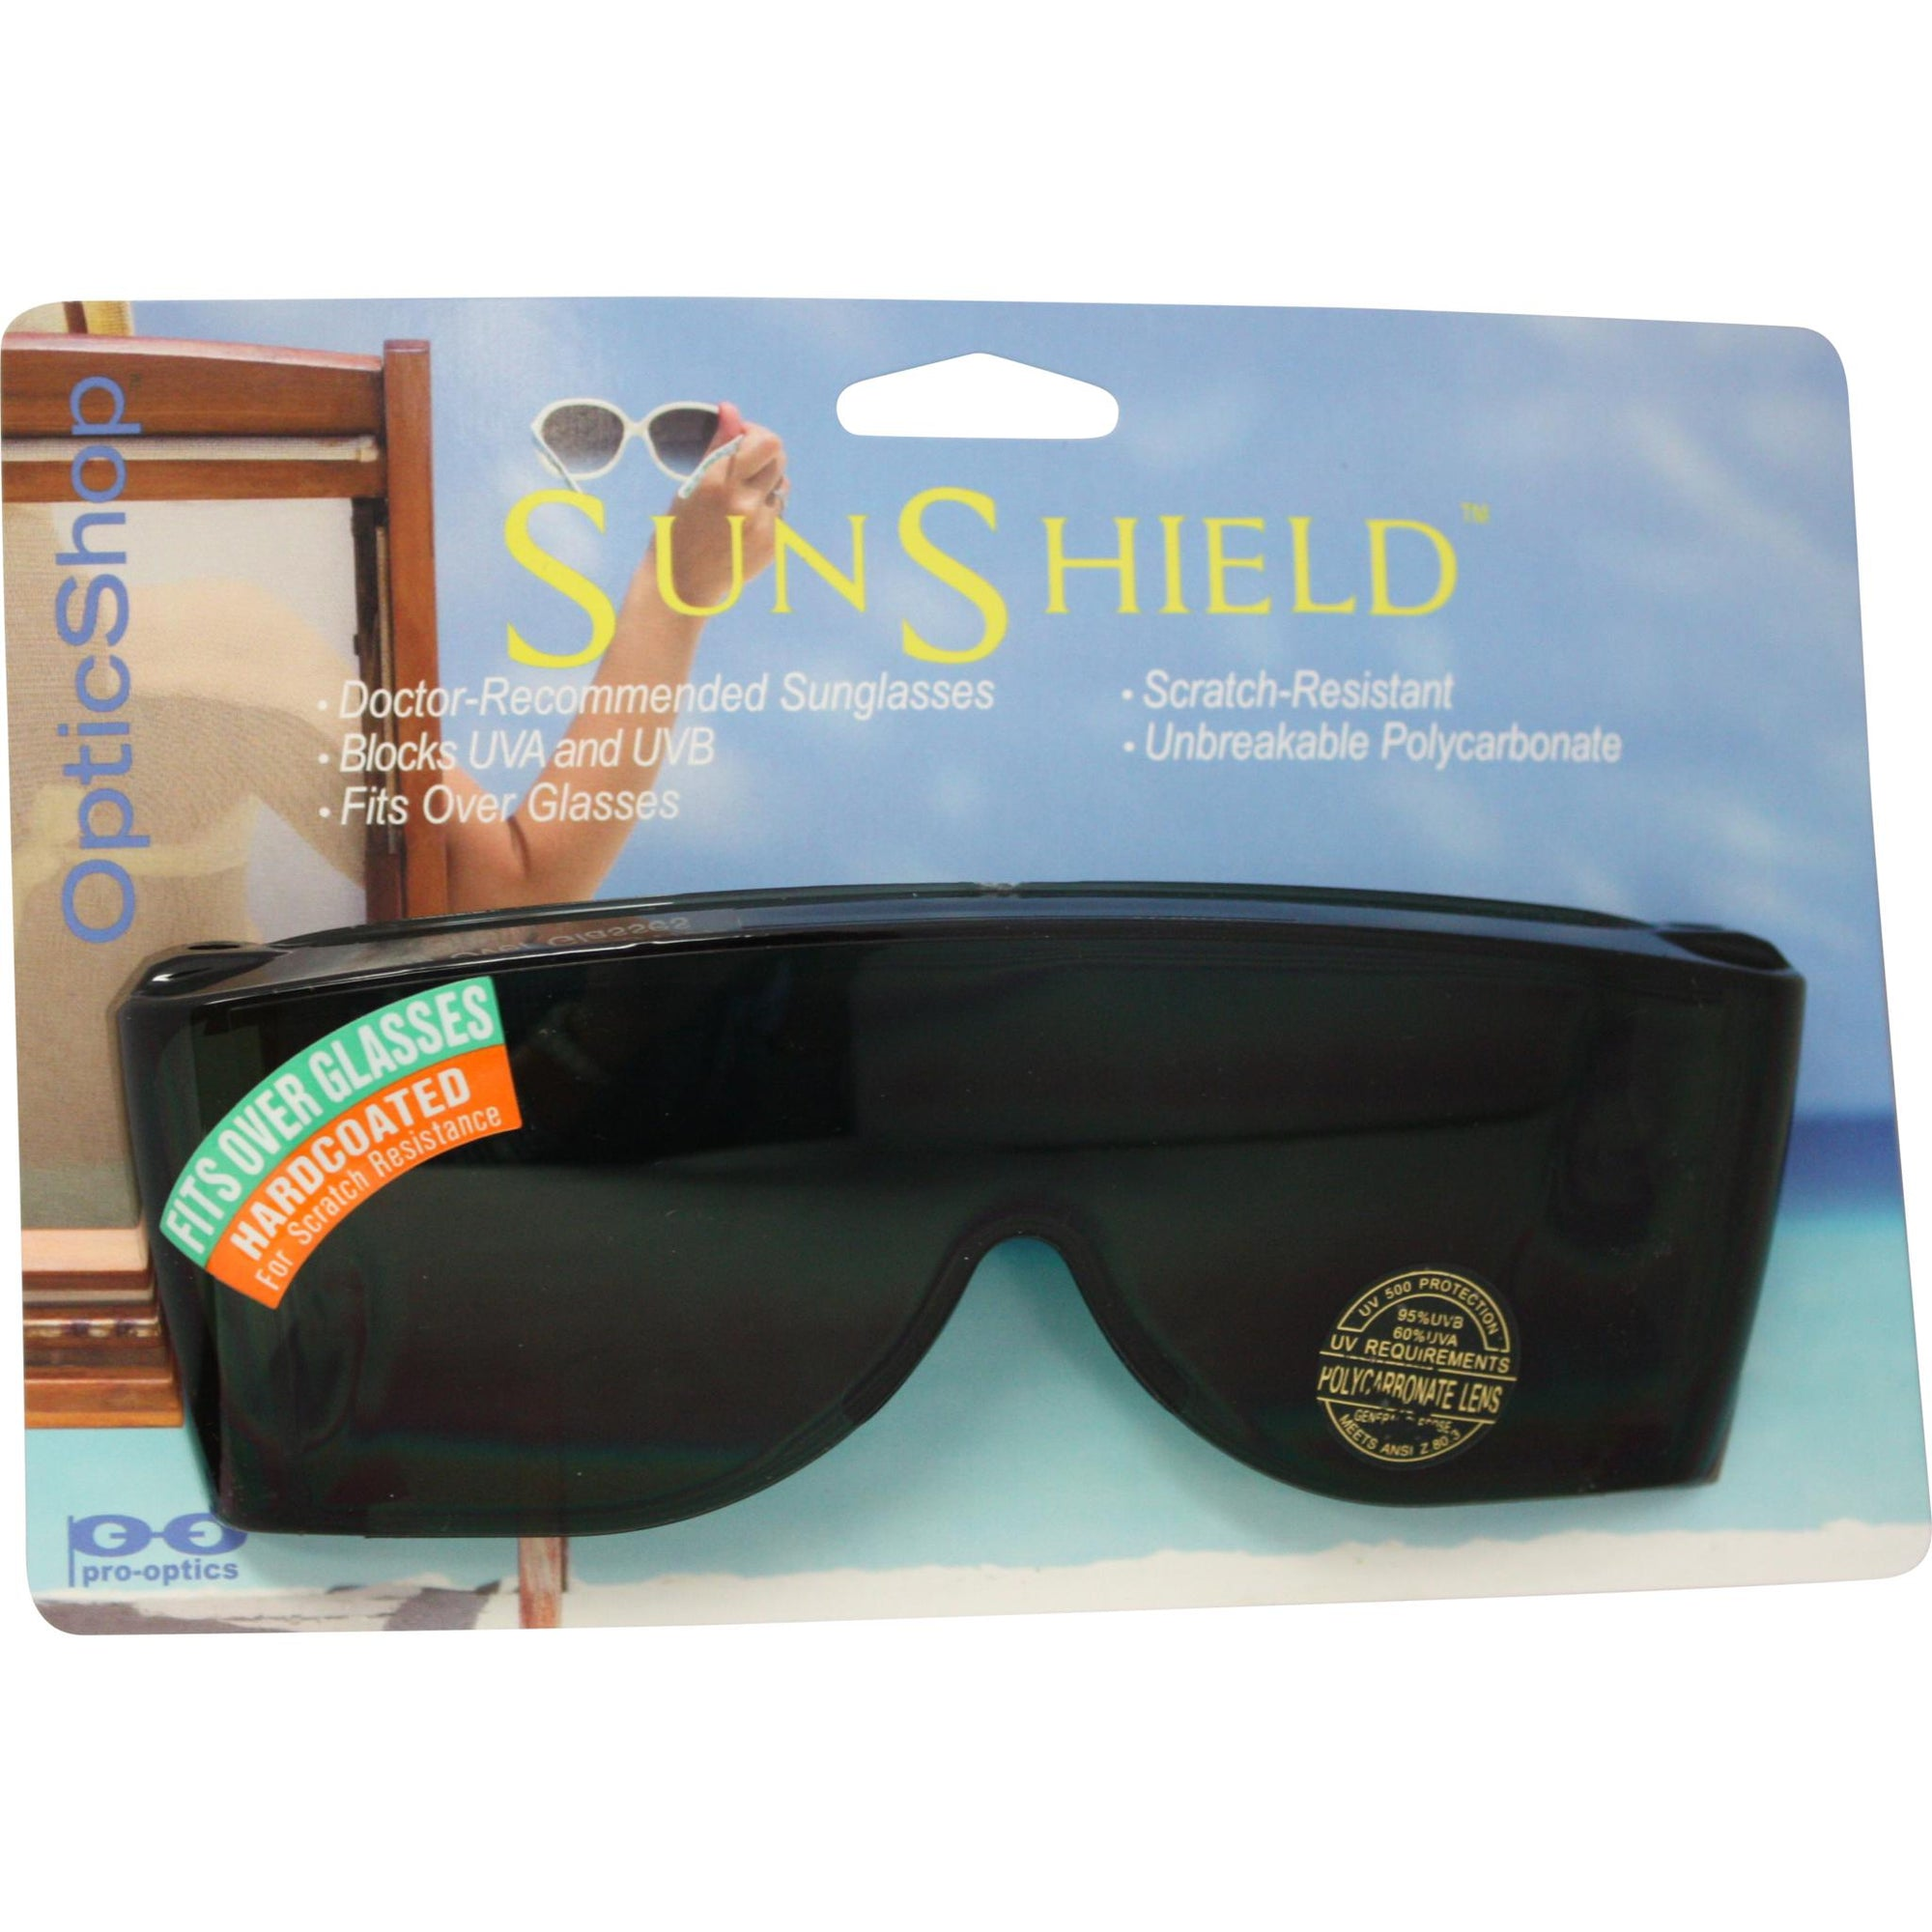 Optic Shop Original Sun Shields™ (137)-Pro-Optics LLC